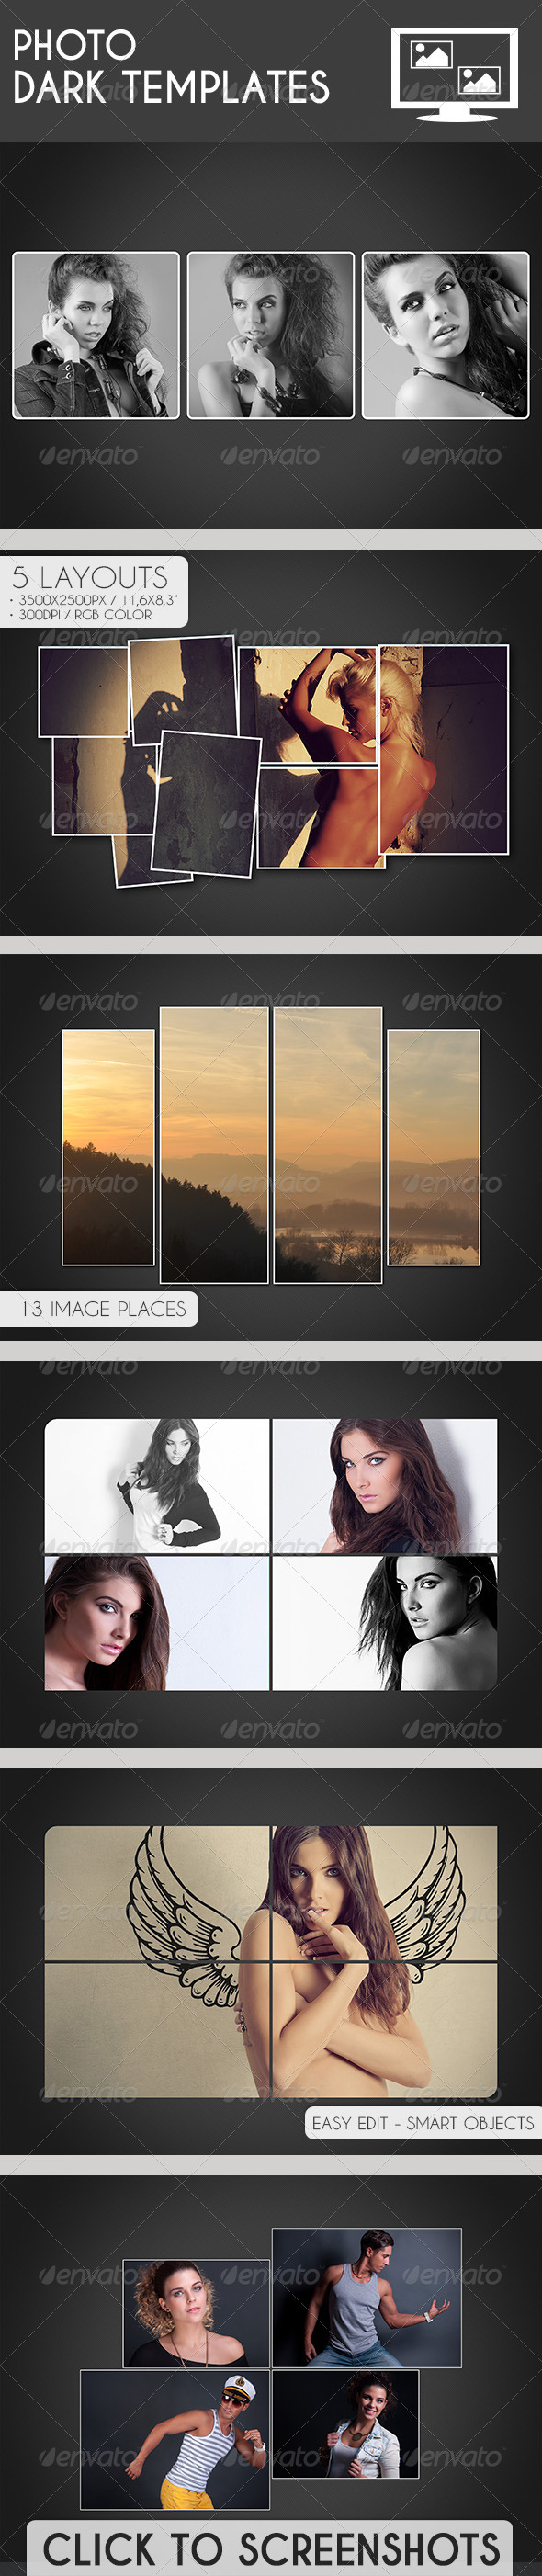 GraphicRiver Photo Dark Templates 7500260